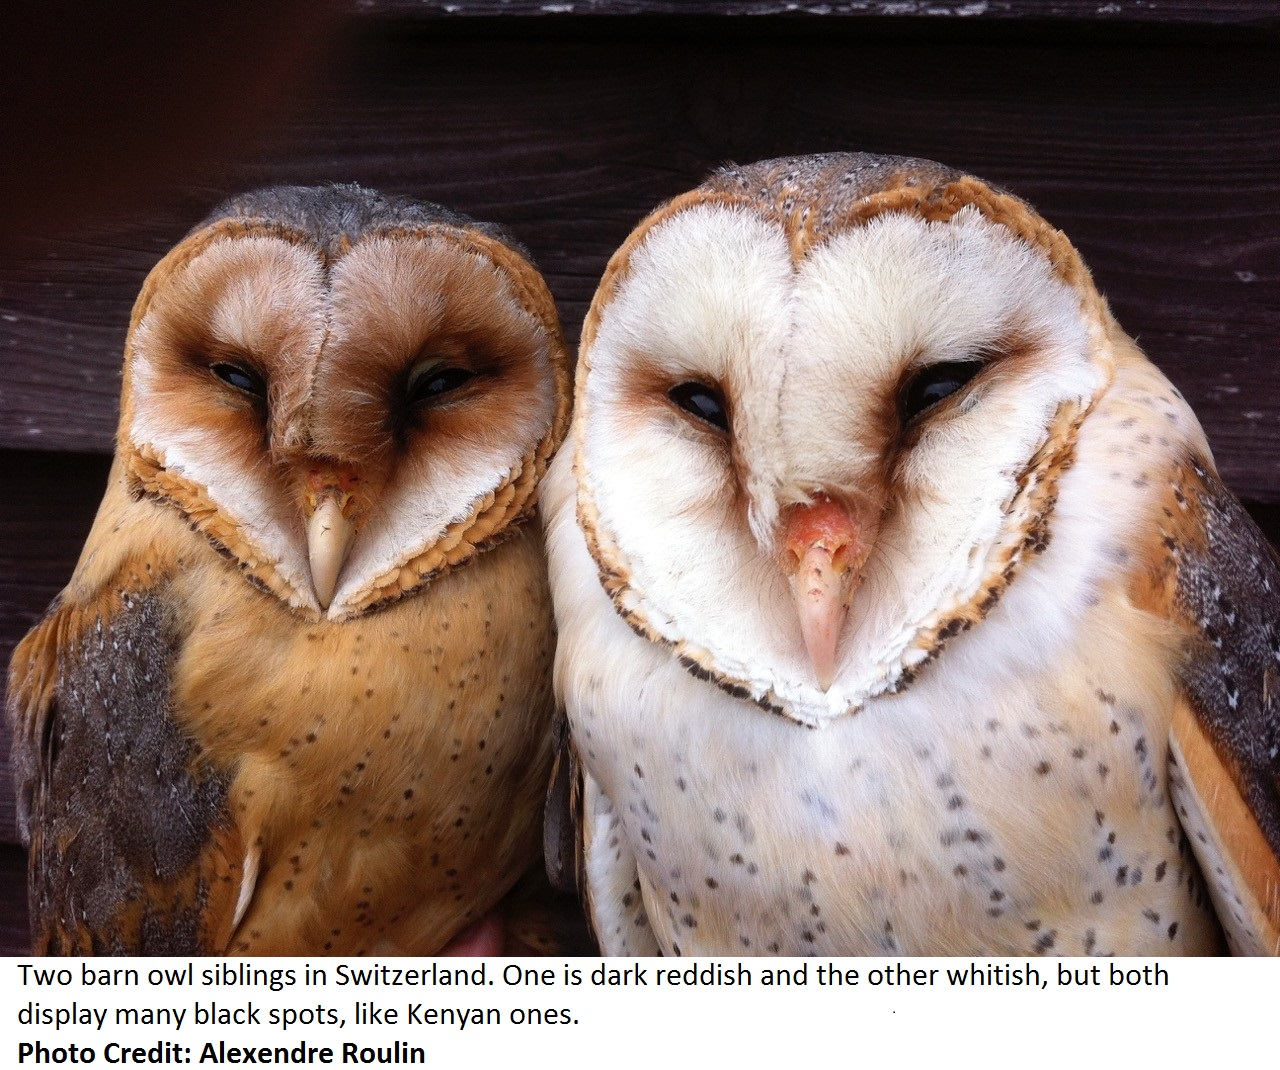 The barn owls ambassadors of peace swara magazine east africa news buycottarizona